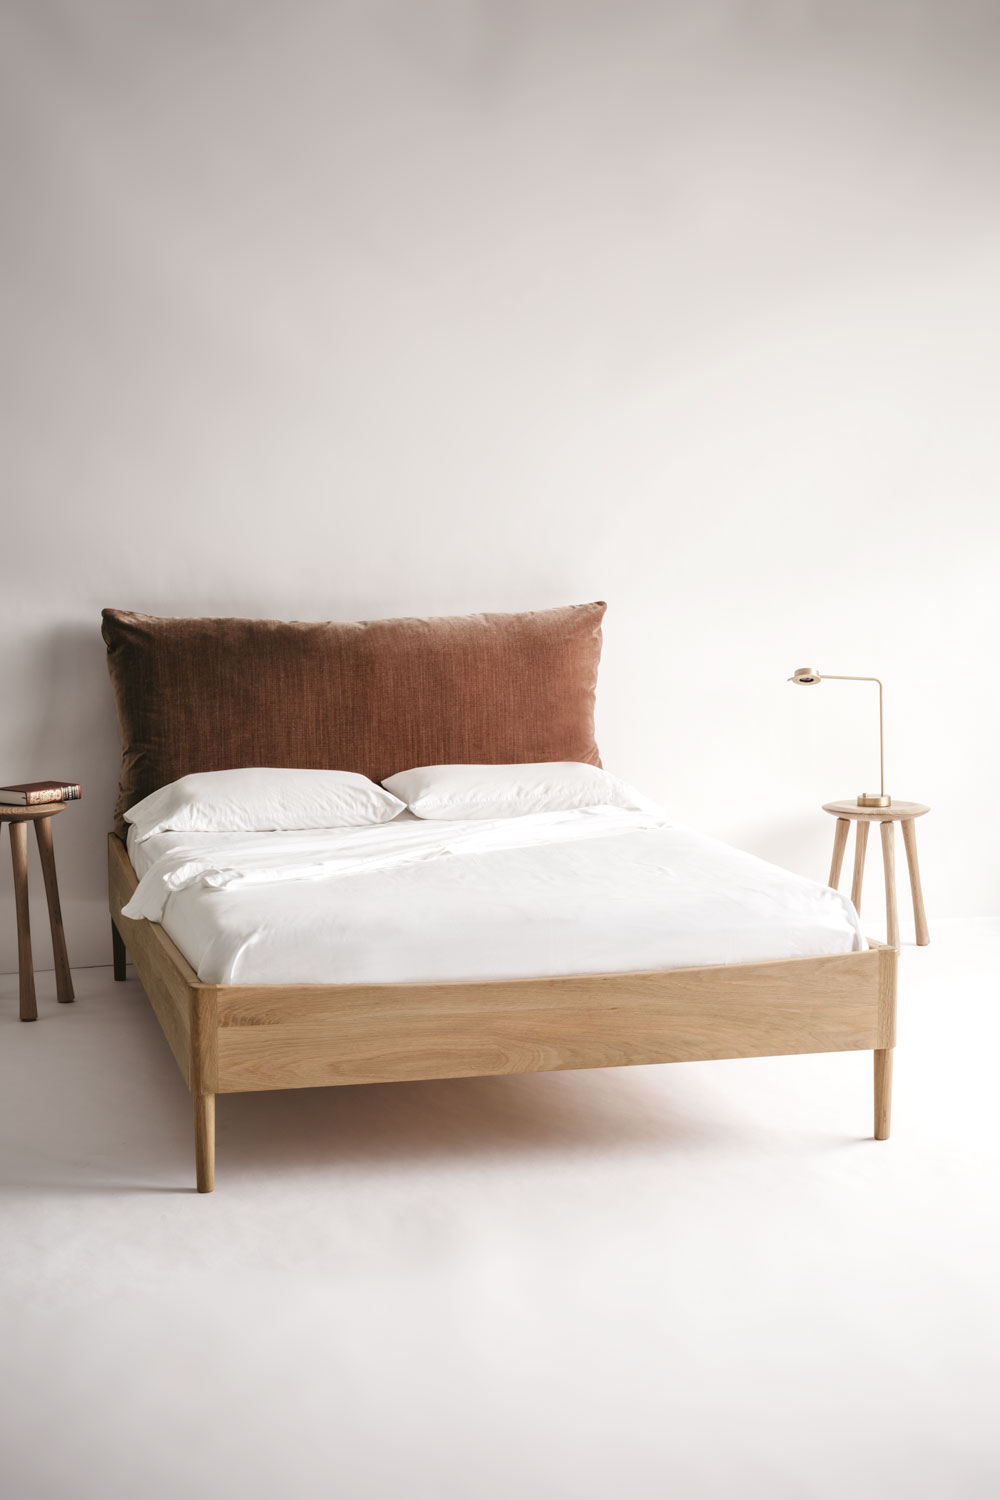 Frame & Pillow Bed